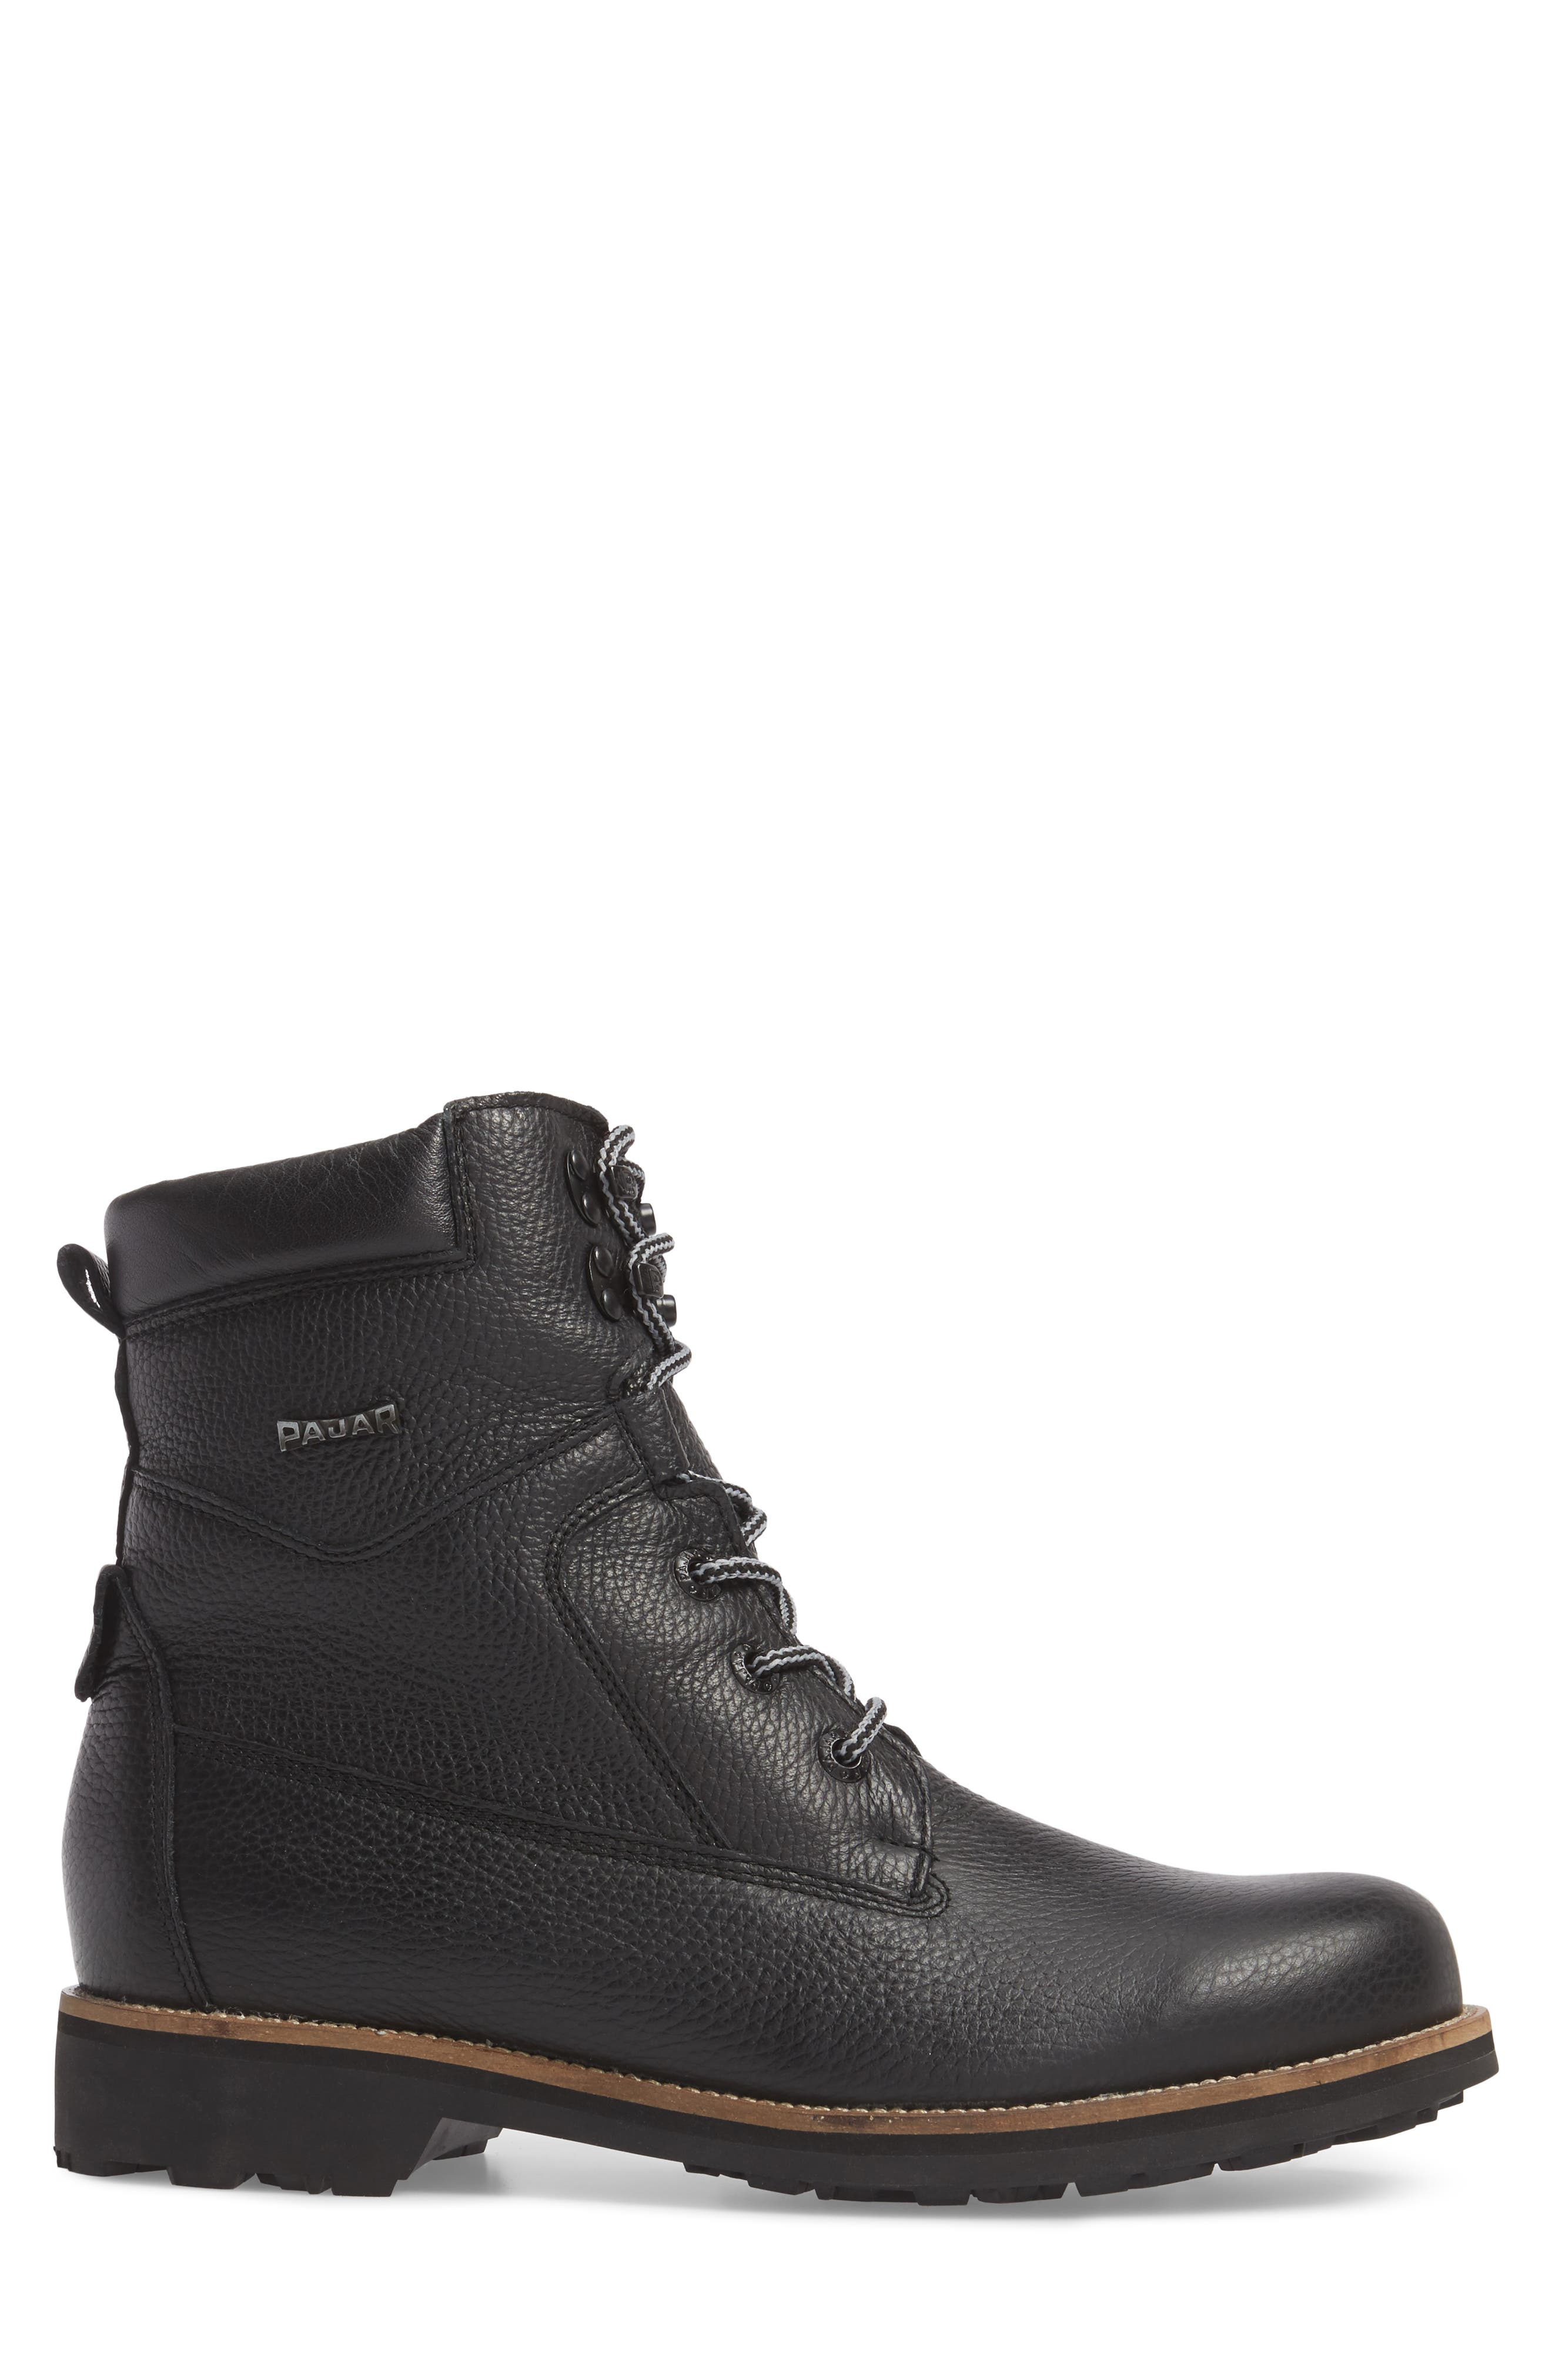 PAJAR,                             David Plain Toe Waterproof Boot,                             Alternate thumbnail 3, color,                             BLACK LEATHER